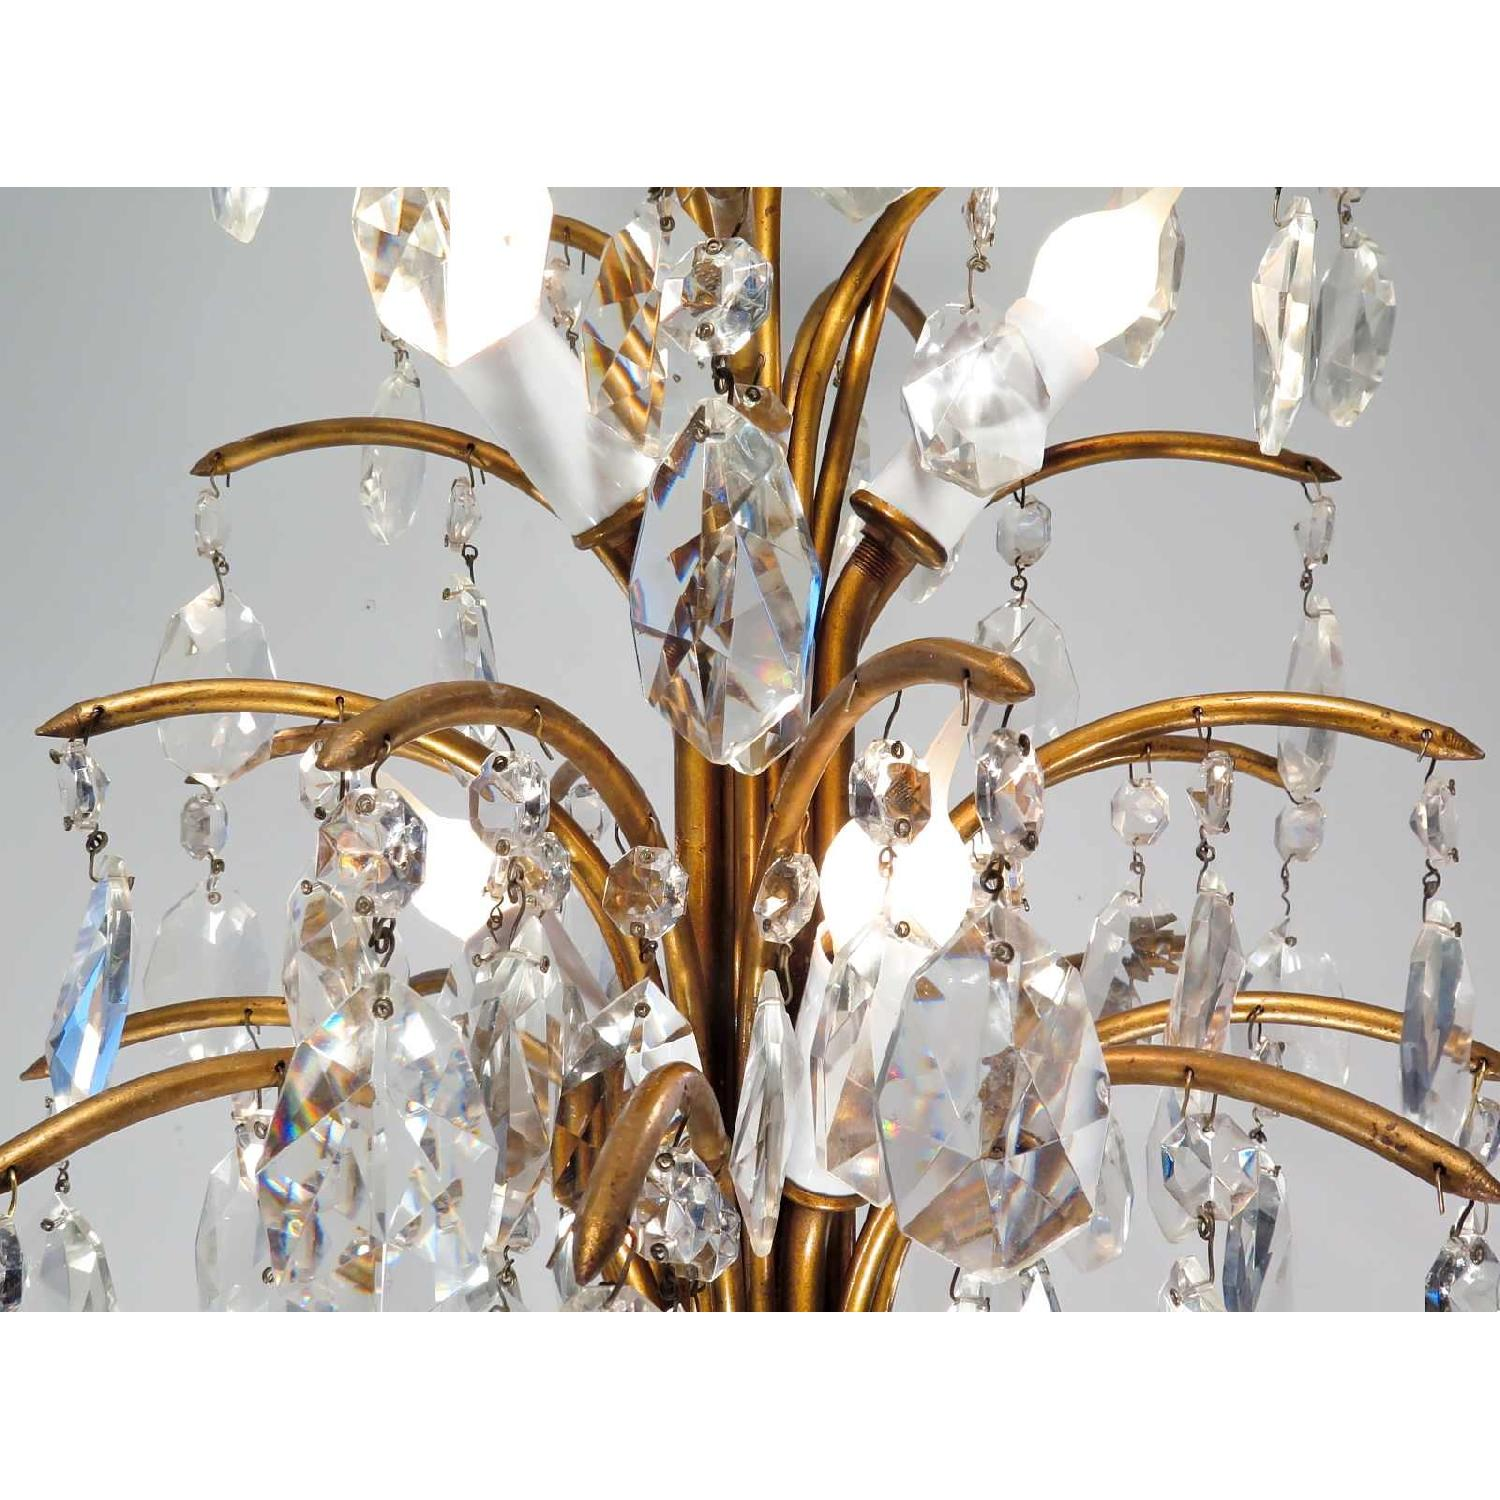 Antique Vintage Mid-Century Chandelier w/ Spray Crystals - 3 Available - image-4